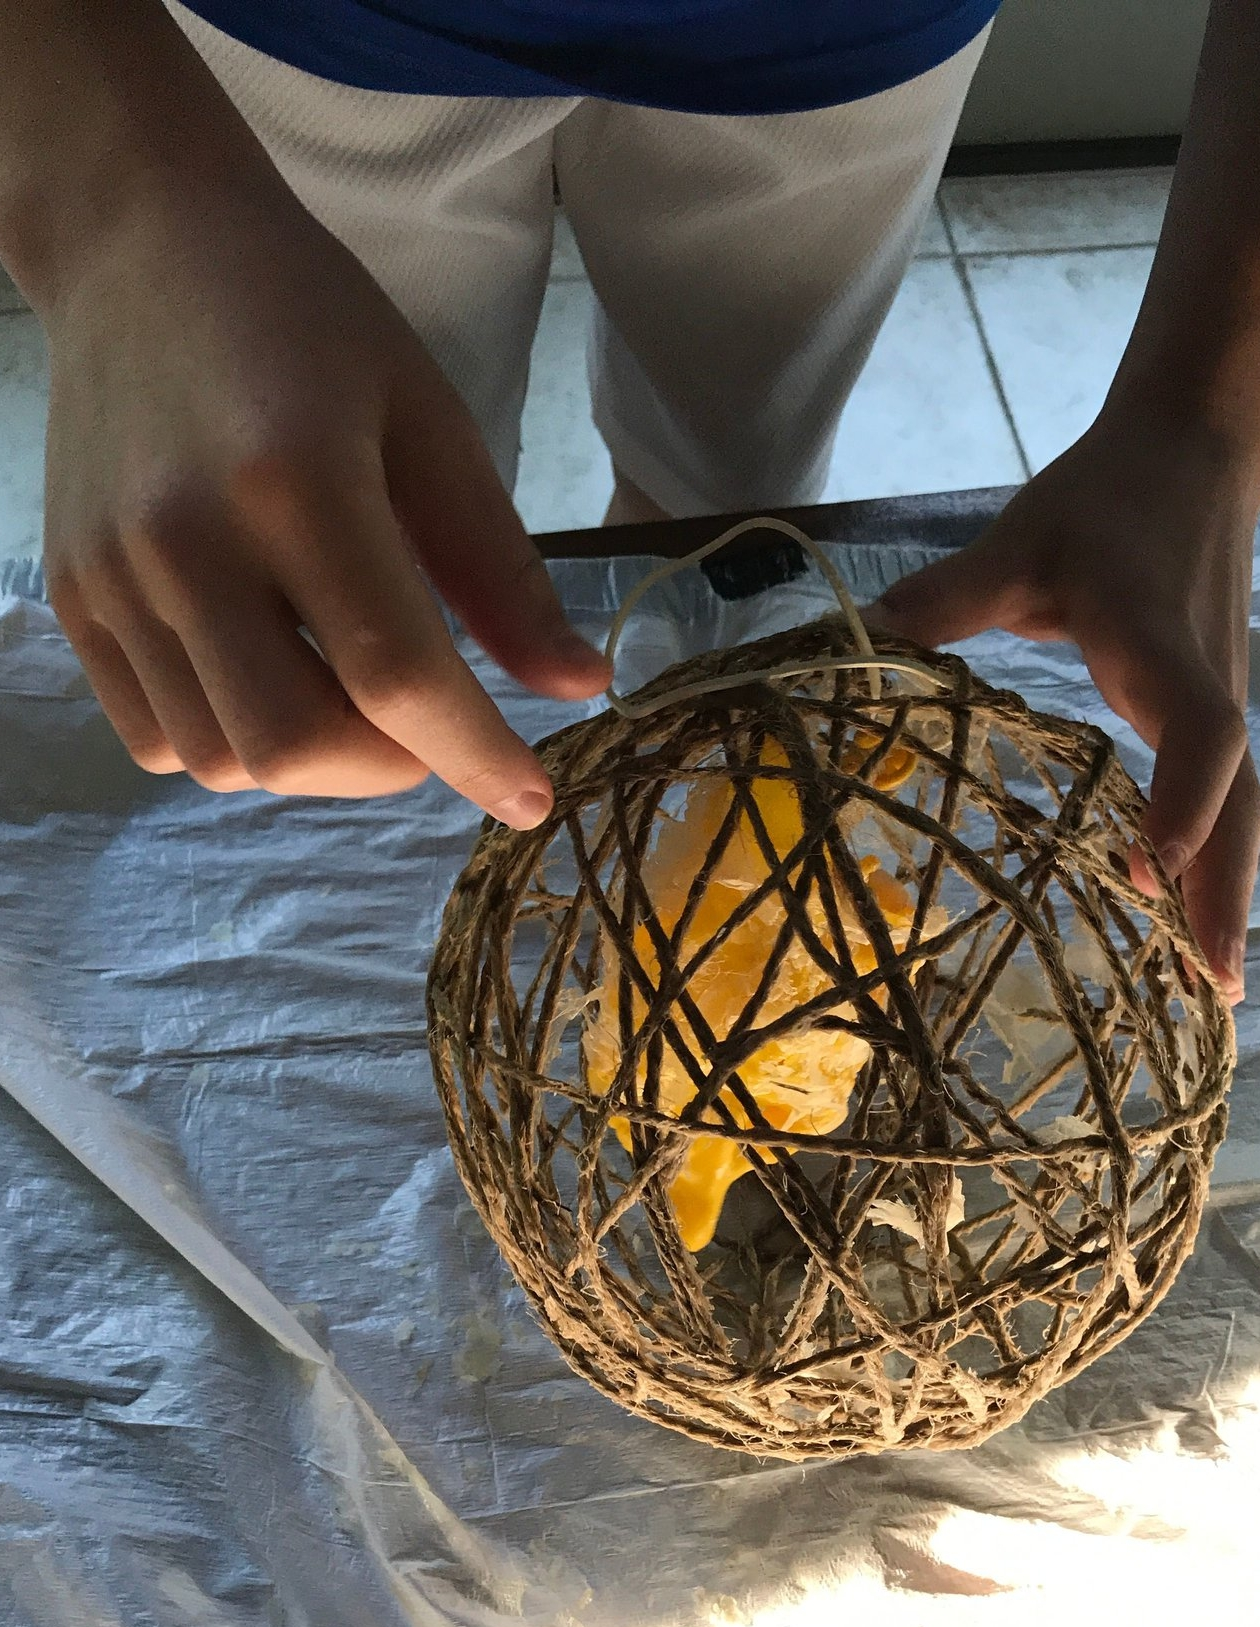 Pop the balloon inside the ball with a scissors.Remove the dried glue that is not attached to the twine. This part is definitely messy, it's a good idea to have newspaper or a trash bag under the ball.